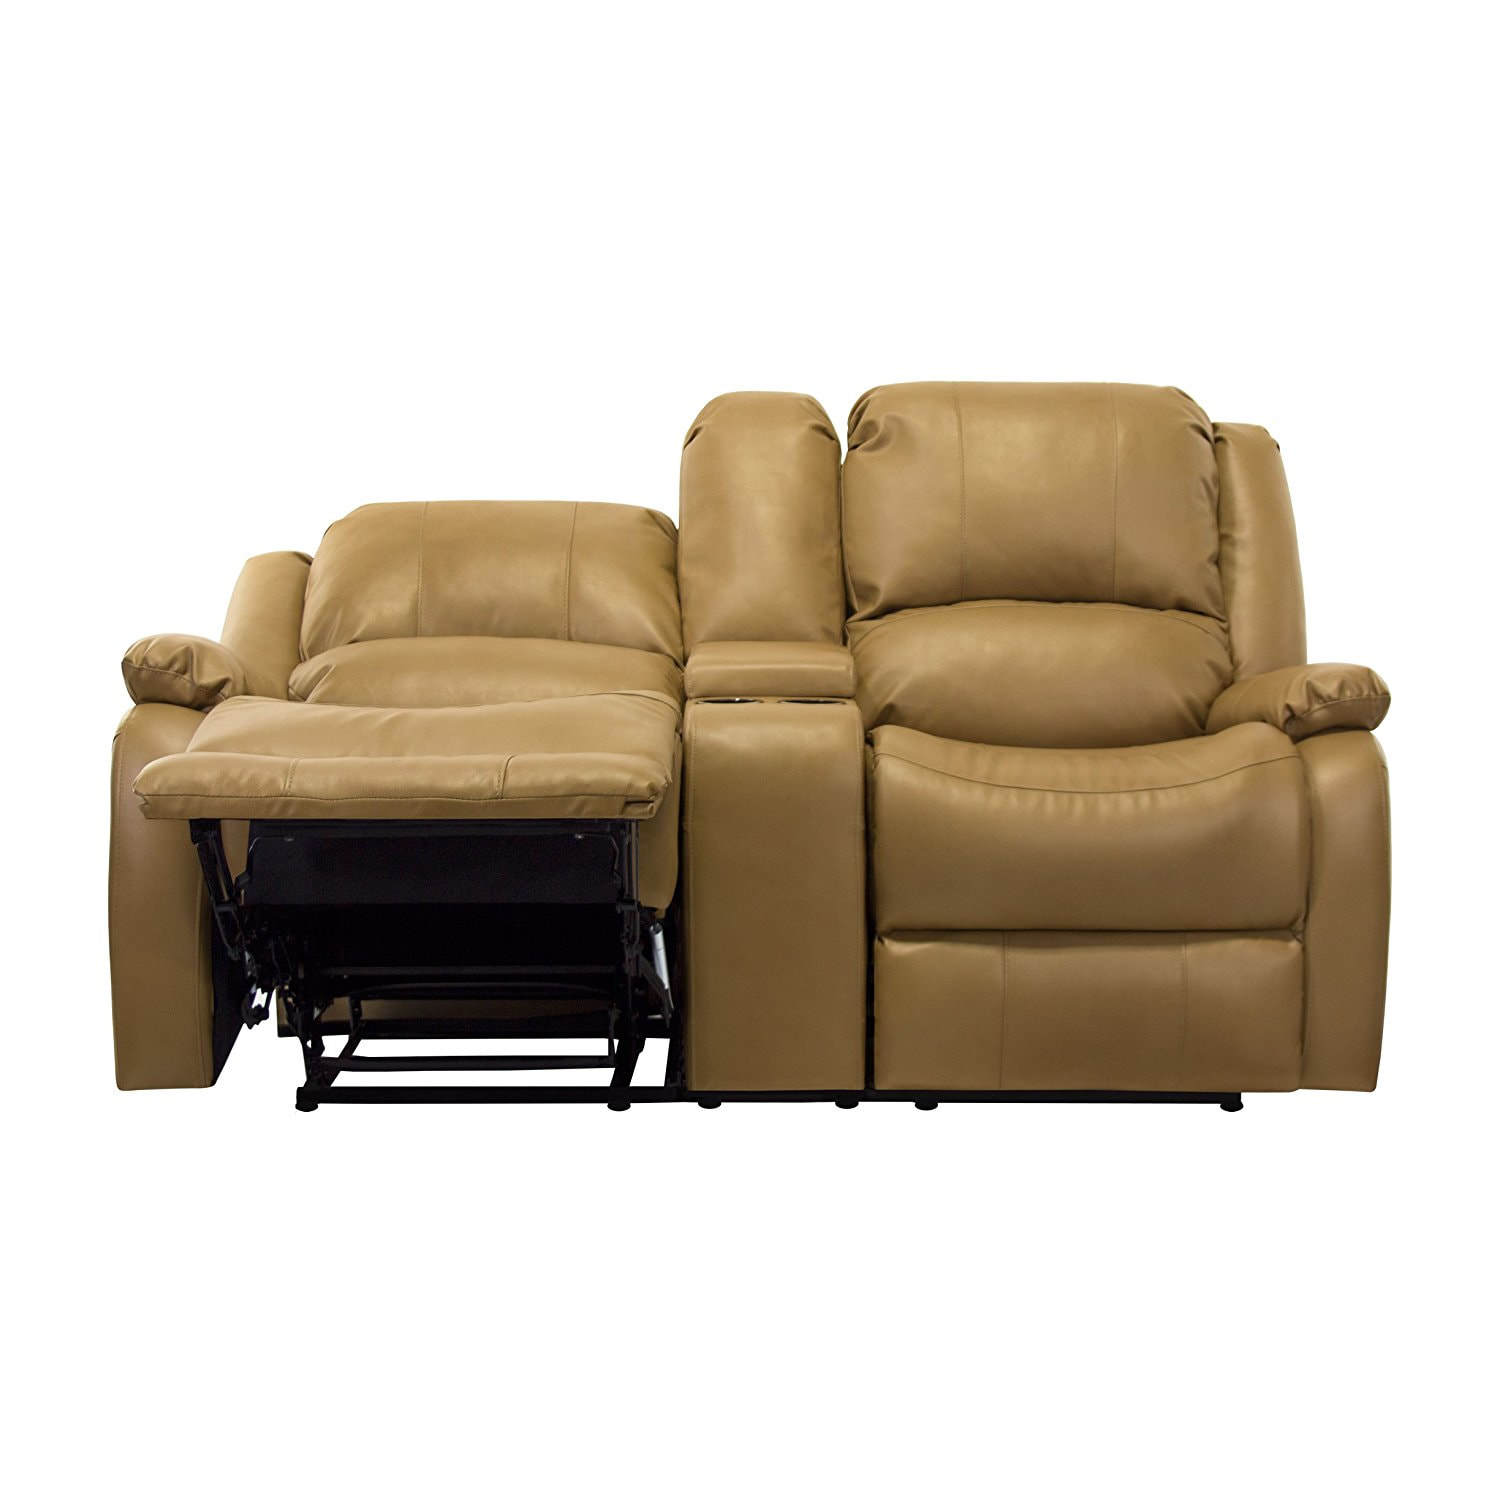 67 Quot Double Rv Zero Wall Hugger Recliner Sofa W Console Tan